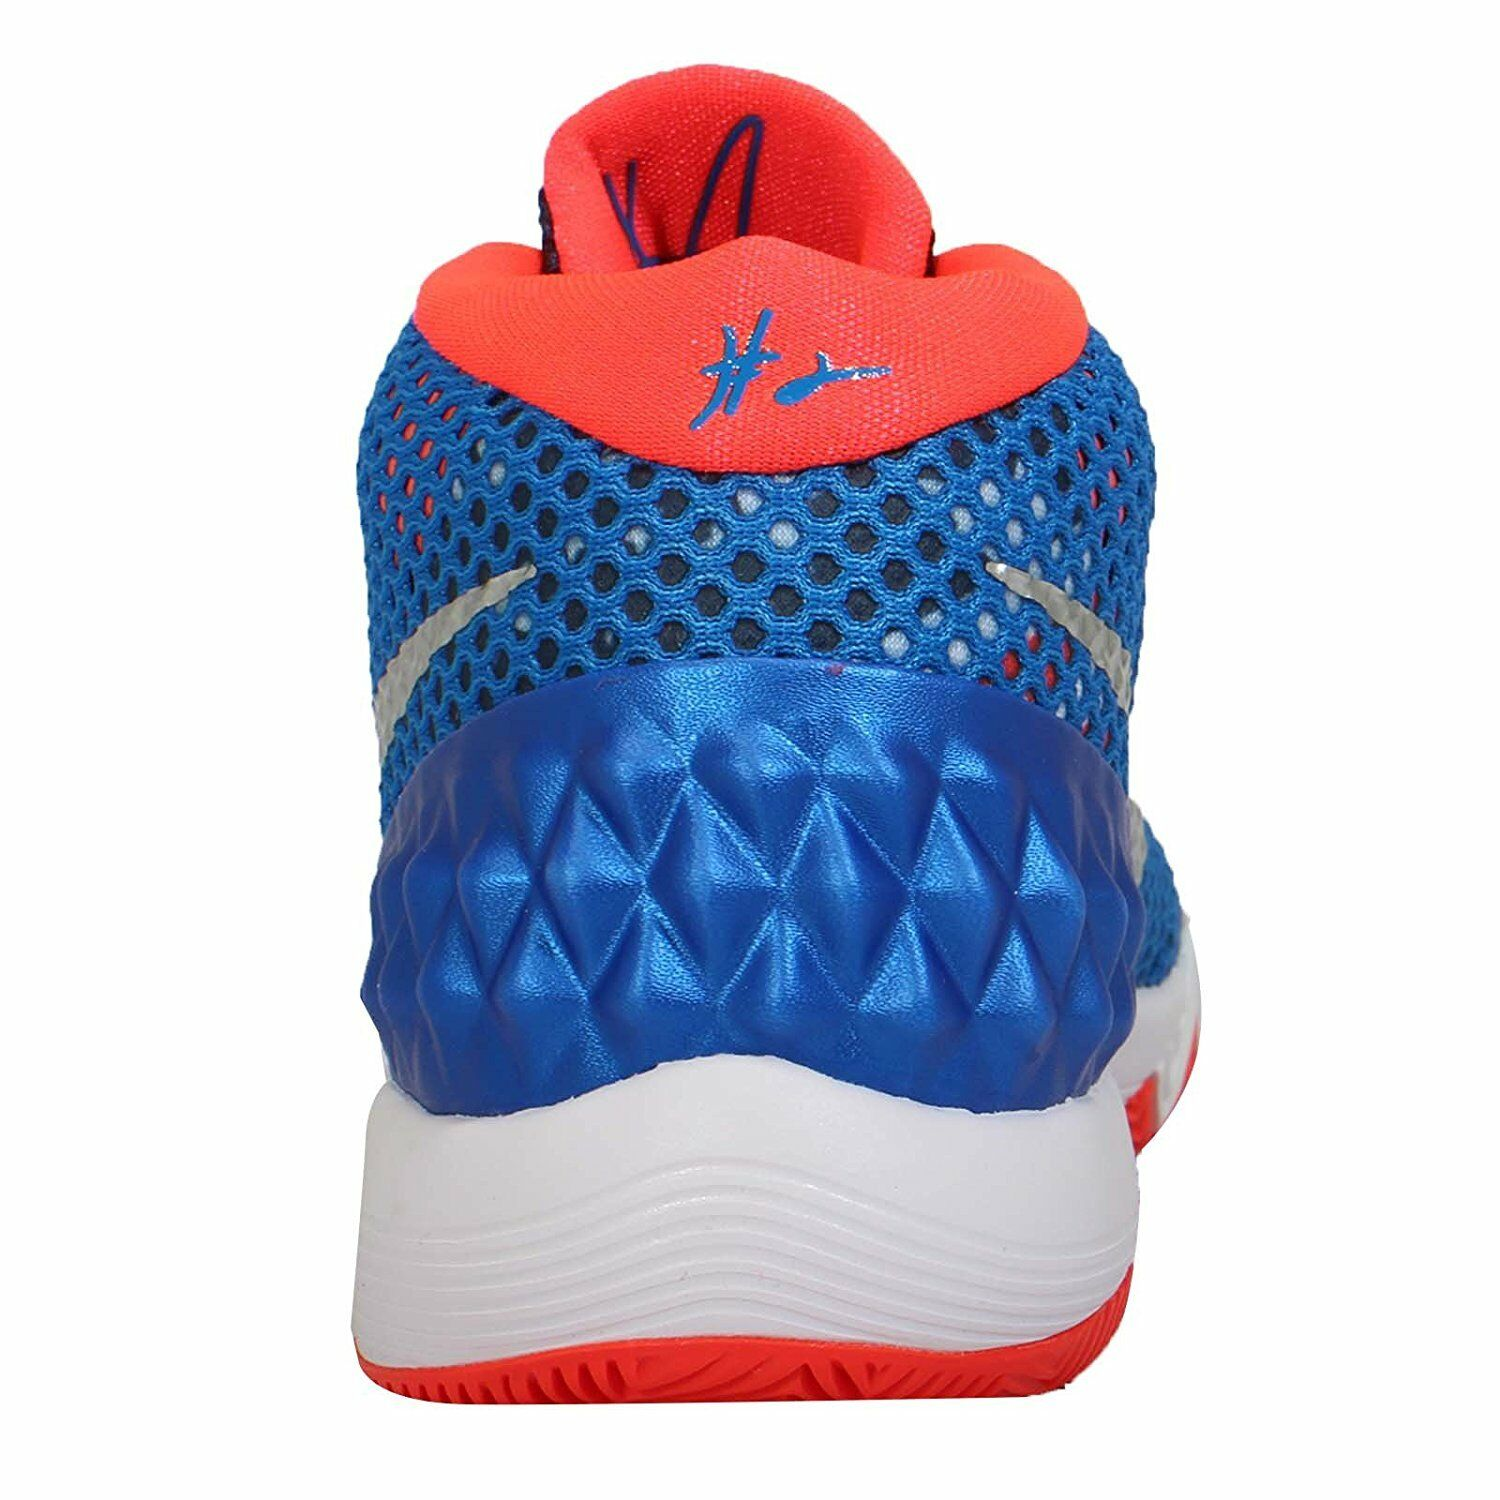 sports shoes c7219 04c8f Nike Kyrie 1 GS 6.5y Independence Day Edition Blue Infrared Killer  Crossover 4th for sale online   eBay